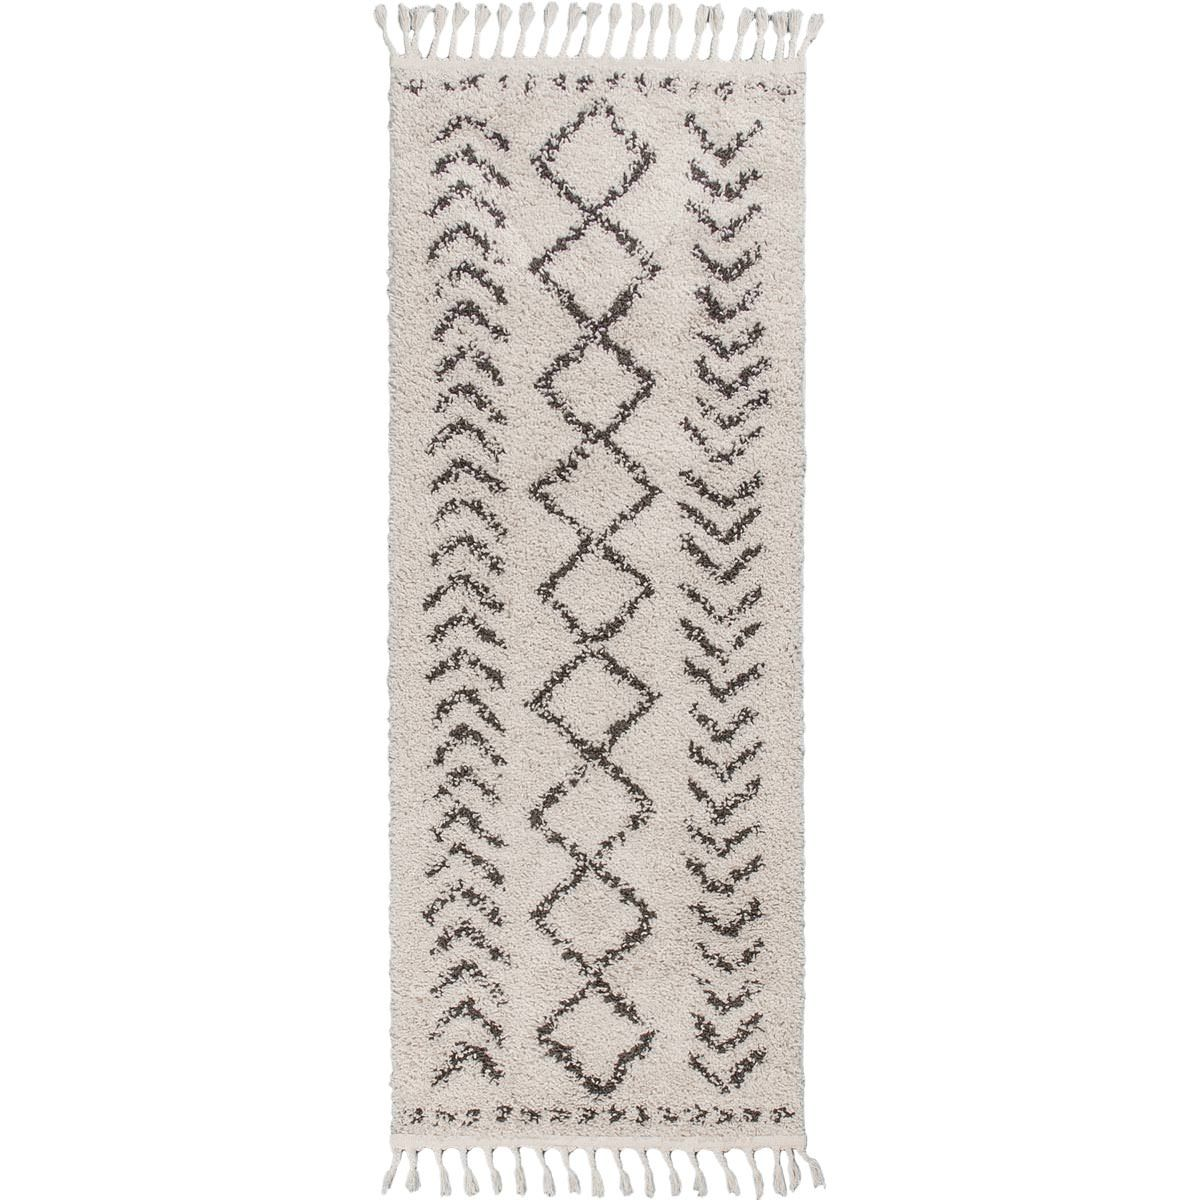 Shaggy Marrakech Rug 04 Cream/Black Runner 1